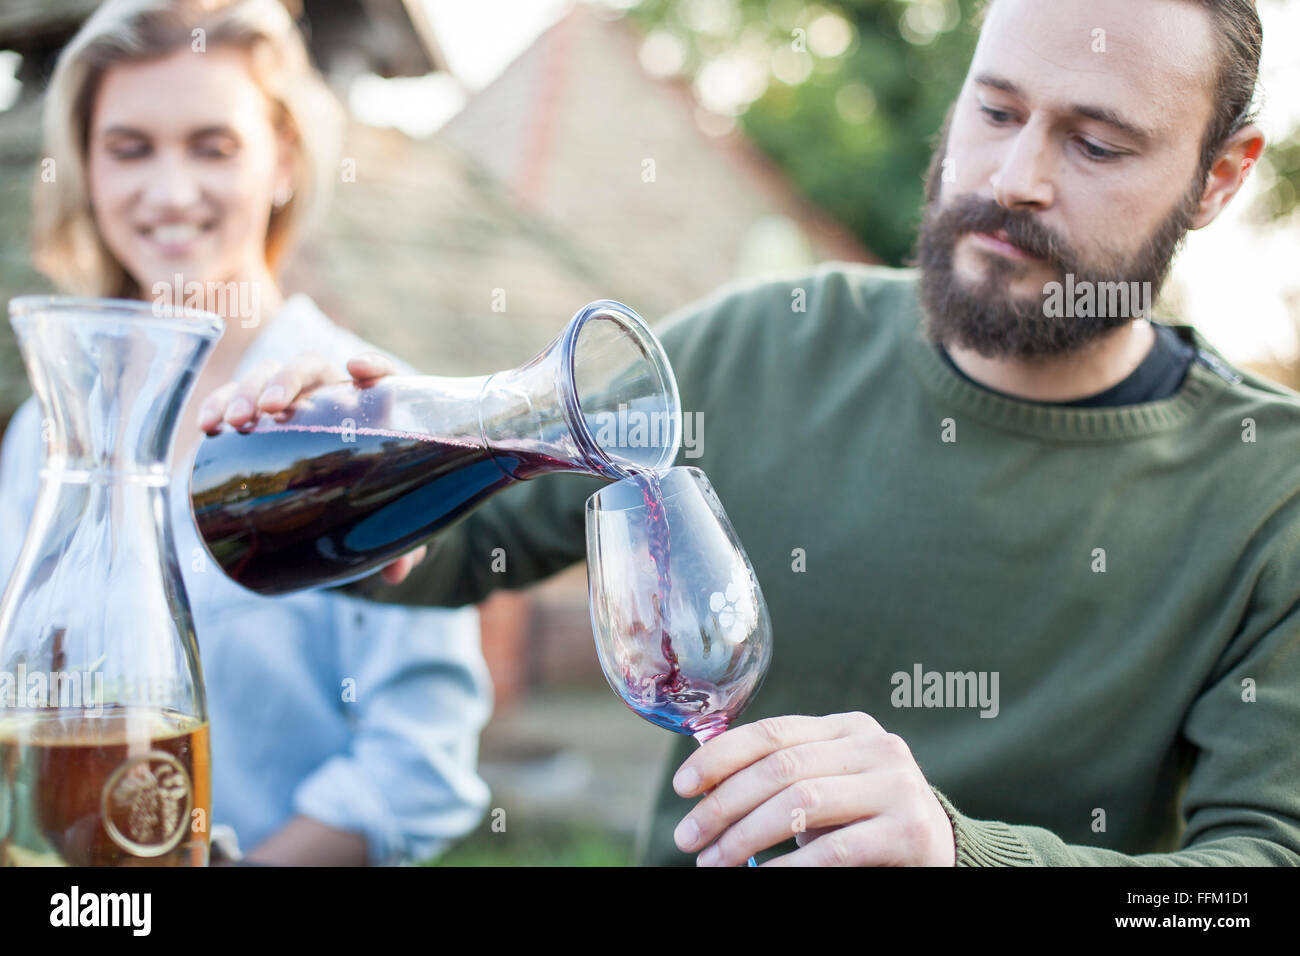 Man pouring red wine on garden party - Stock Image